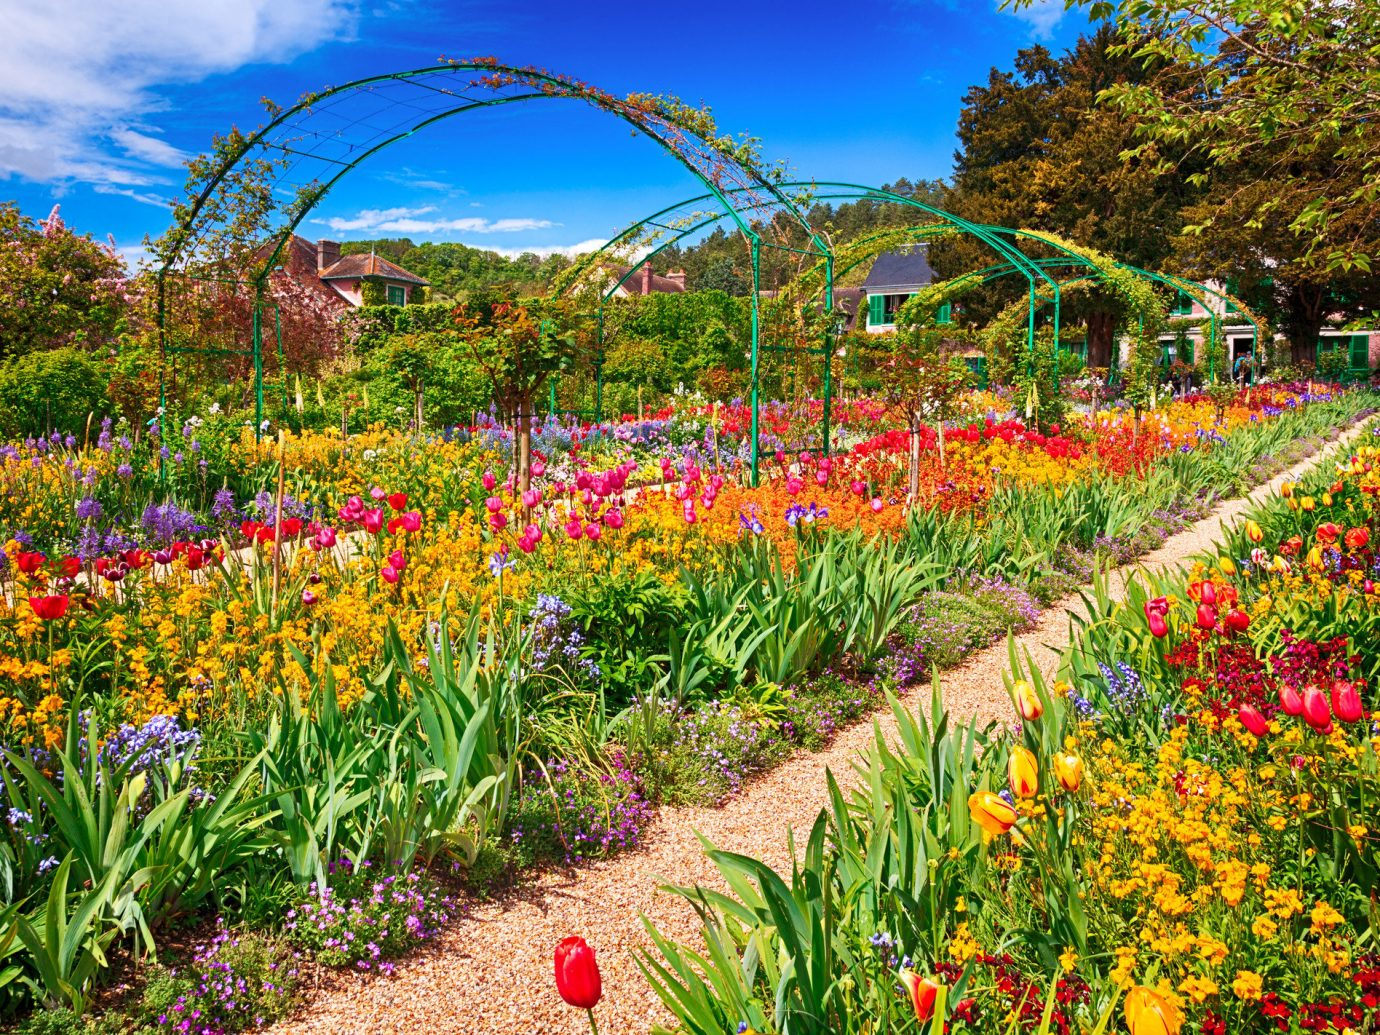 Trip Ideas tree outdoor grass sky flower flora plant botany field Garden meadow wildflower botanical garden flowering plant bushes colorful surrounded